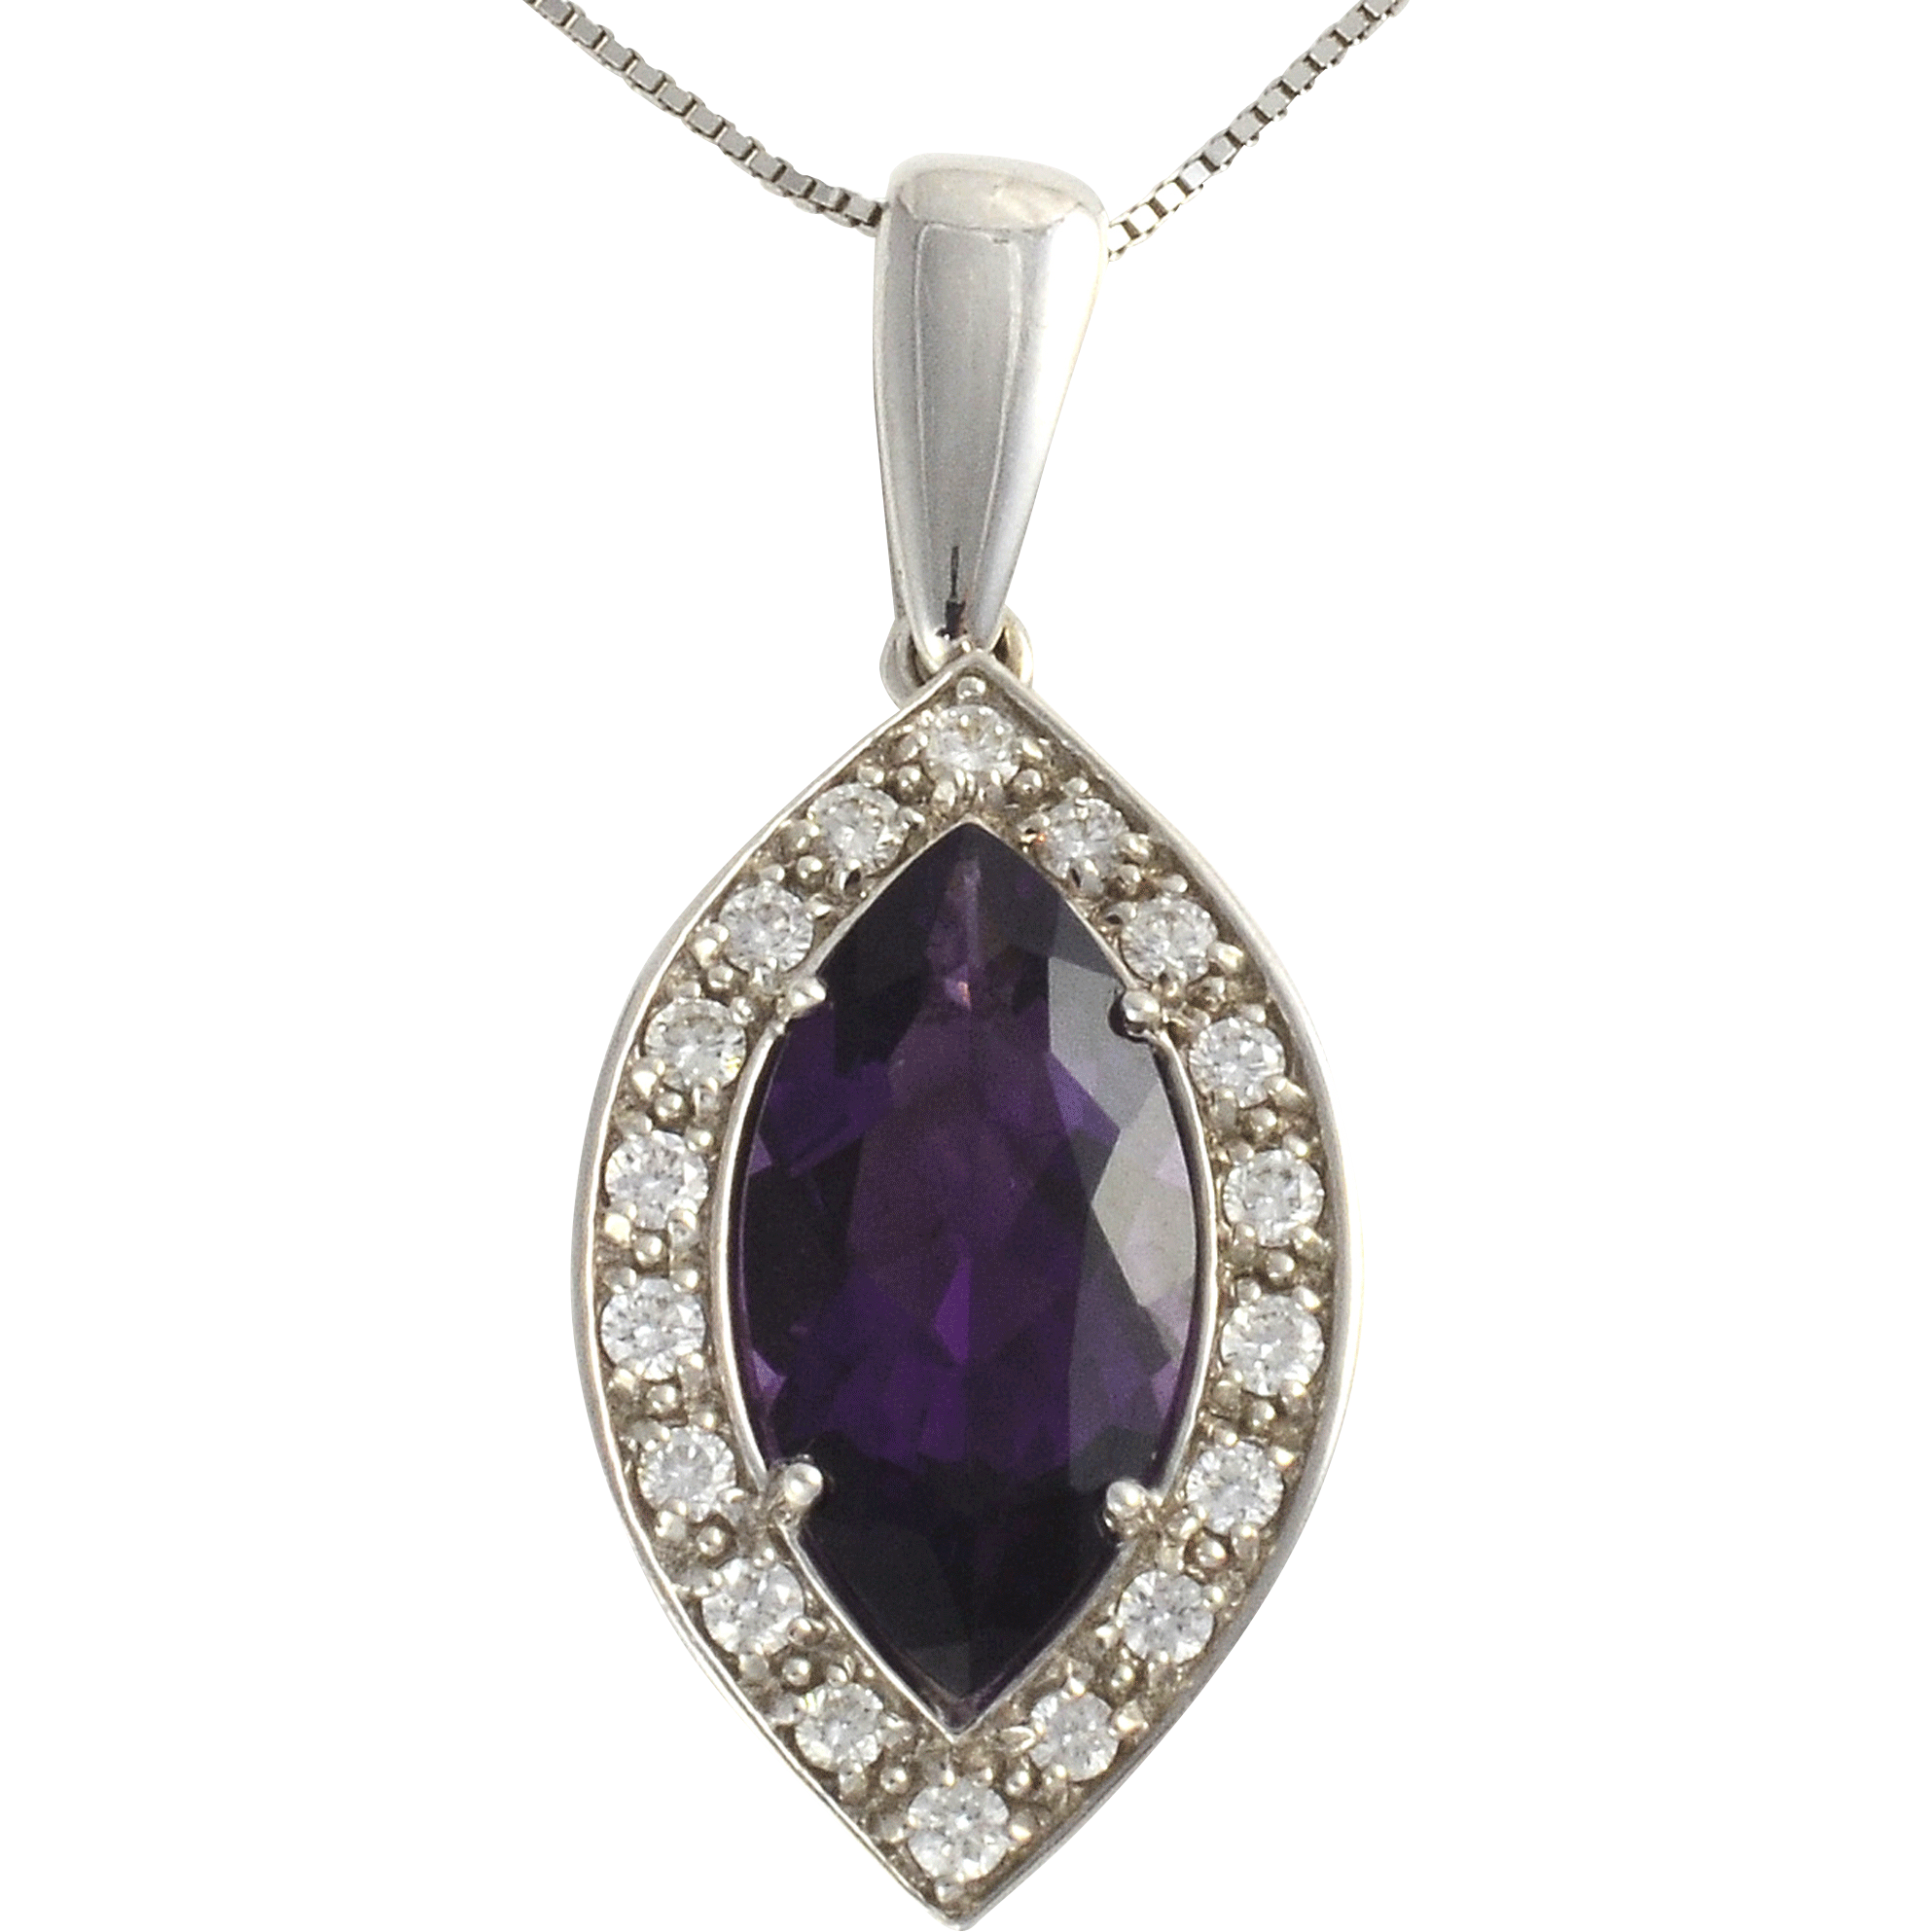 Marquise Amethyst and Diamond Pendant on Chain